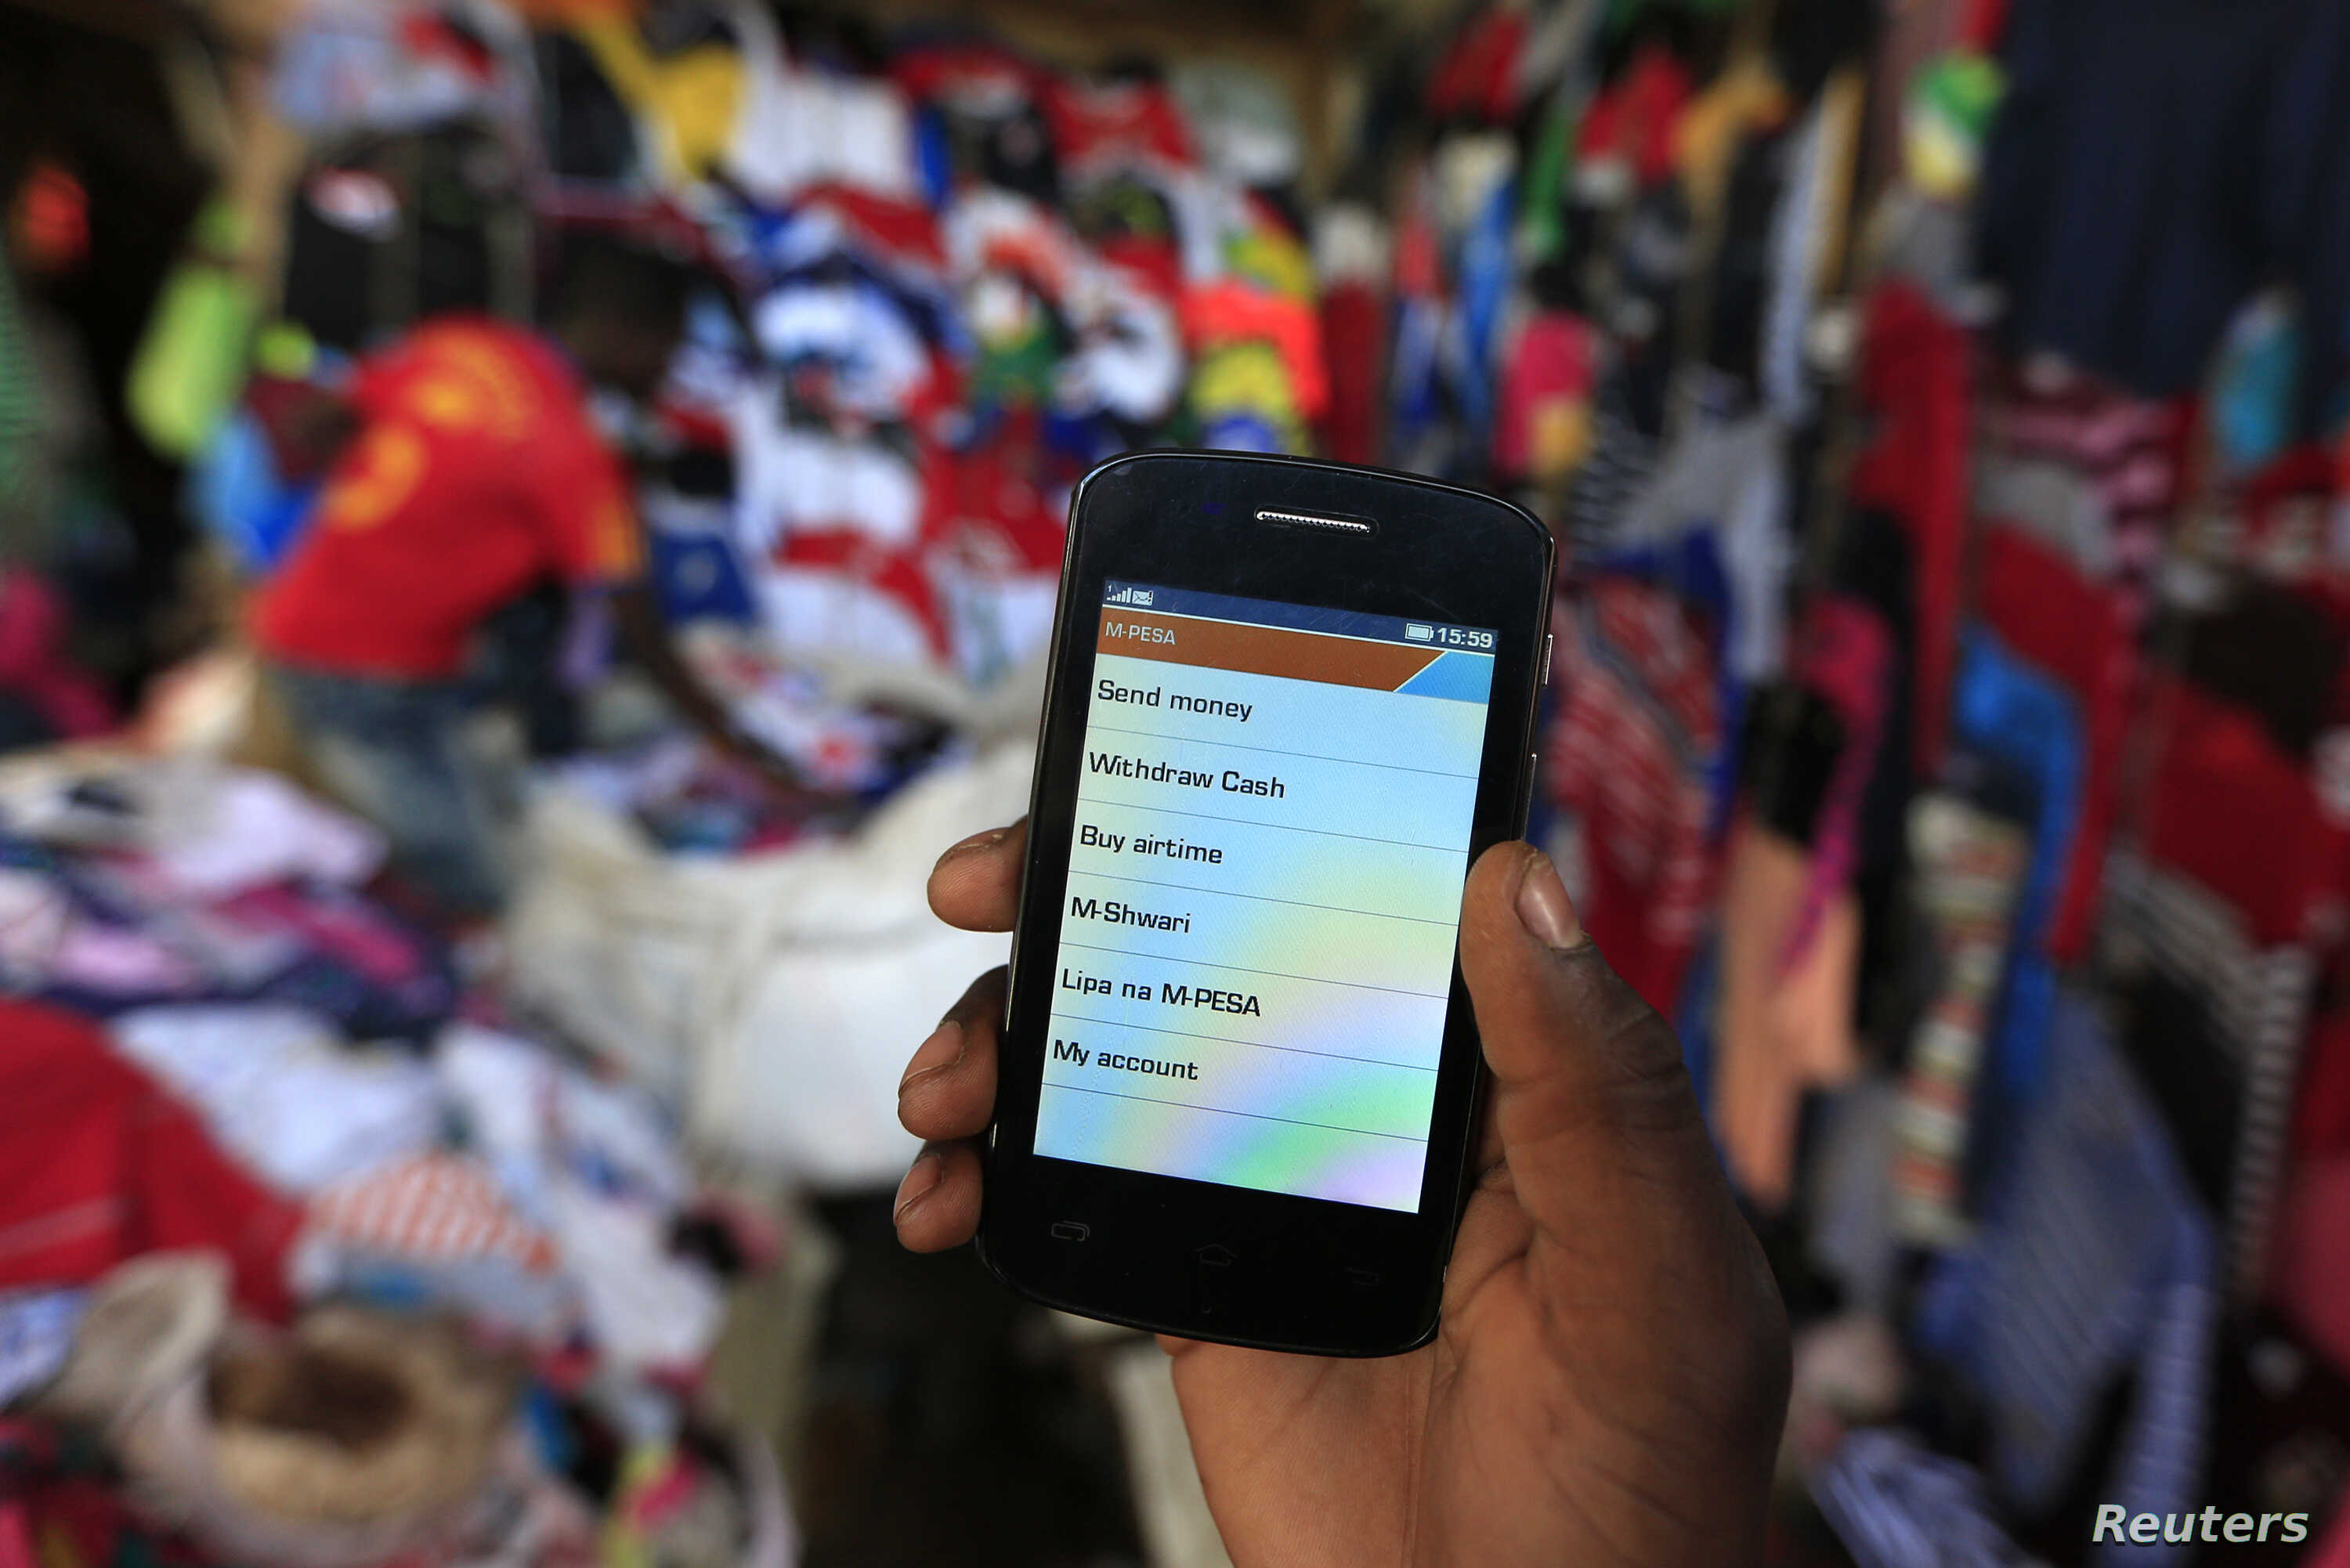 Thousands of Kenyan Single Mothers, Widows Use Mobile Money